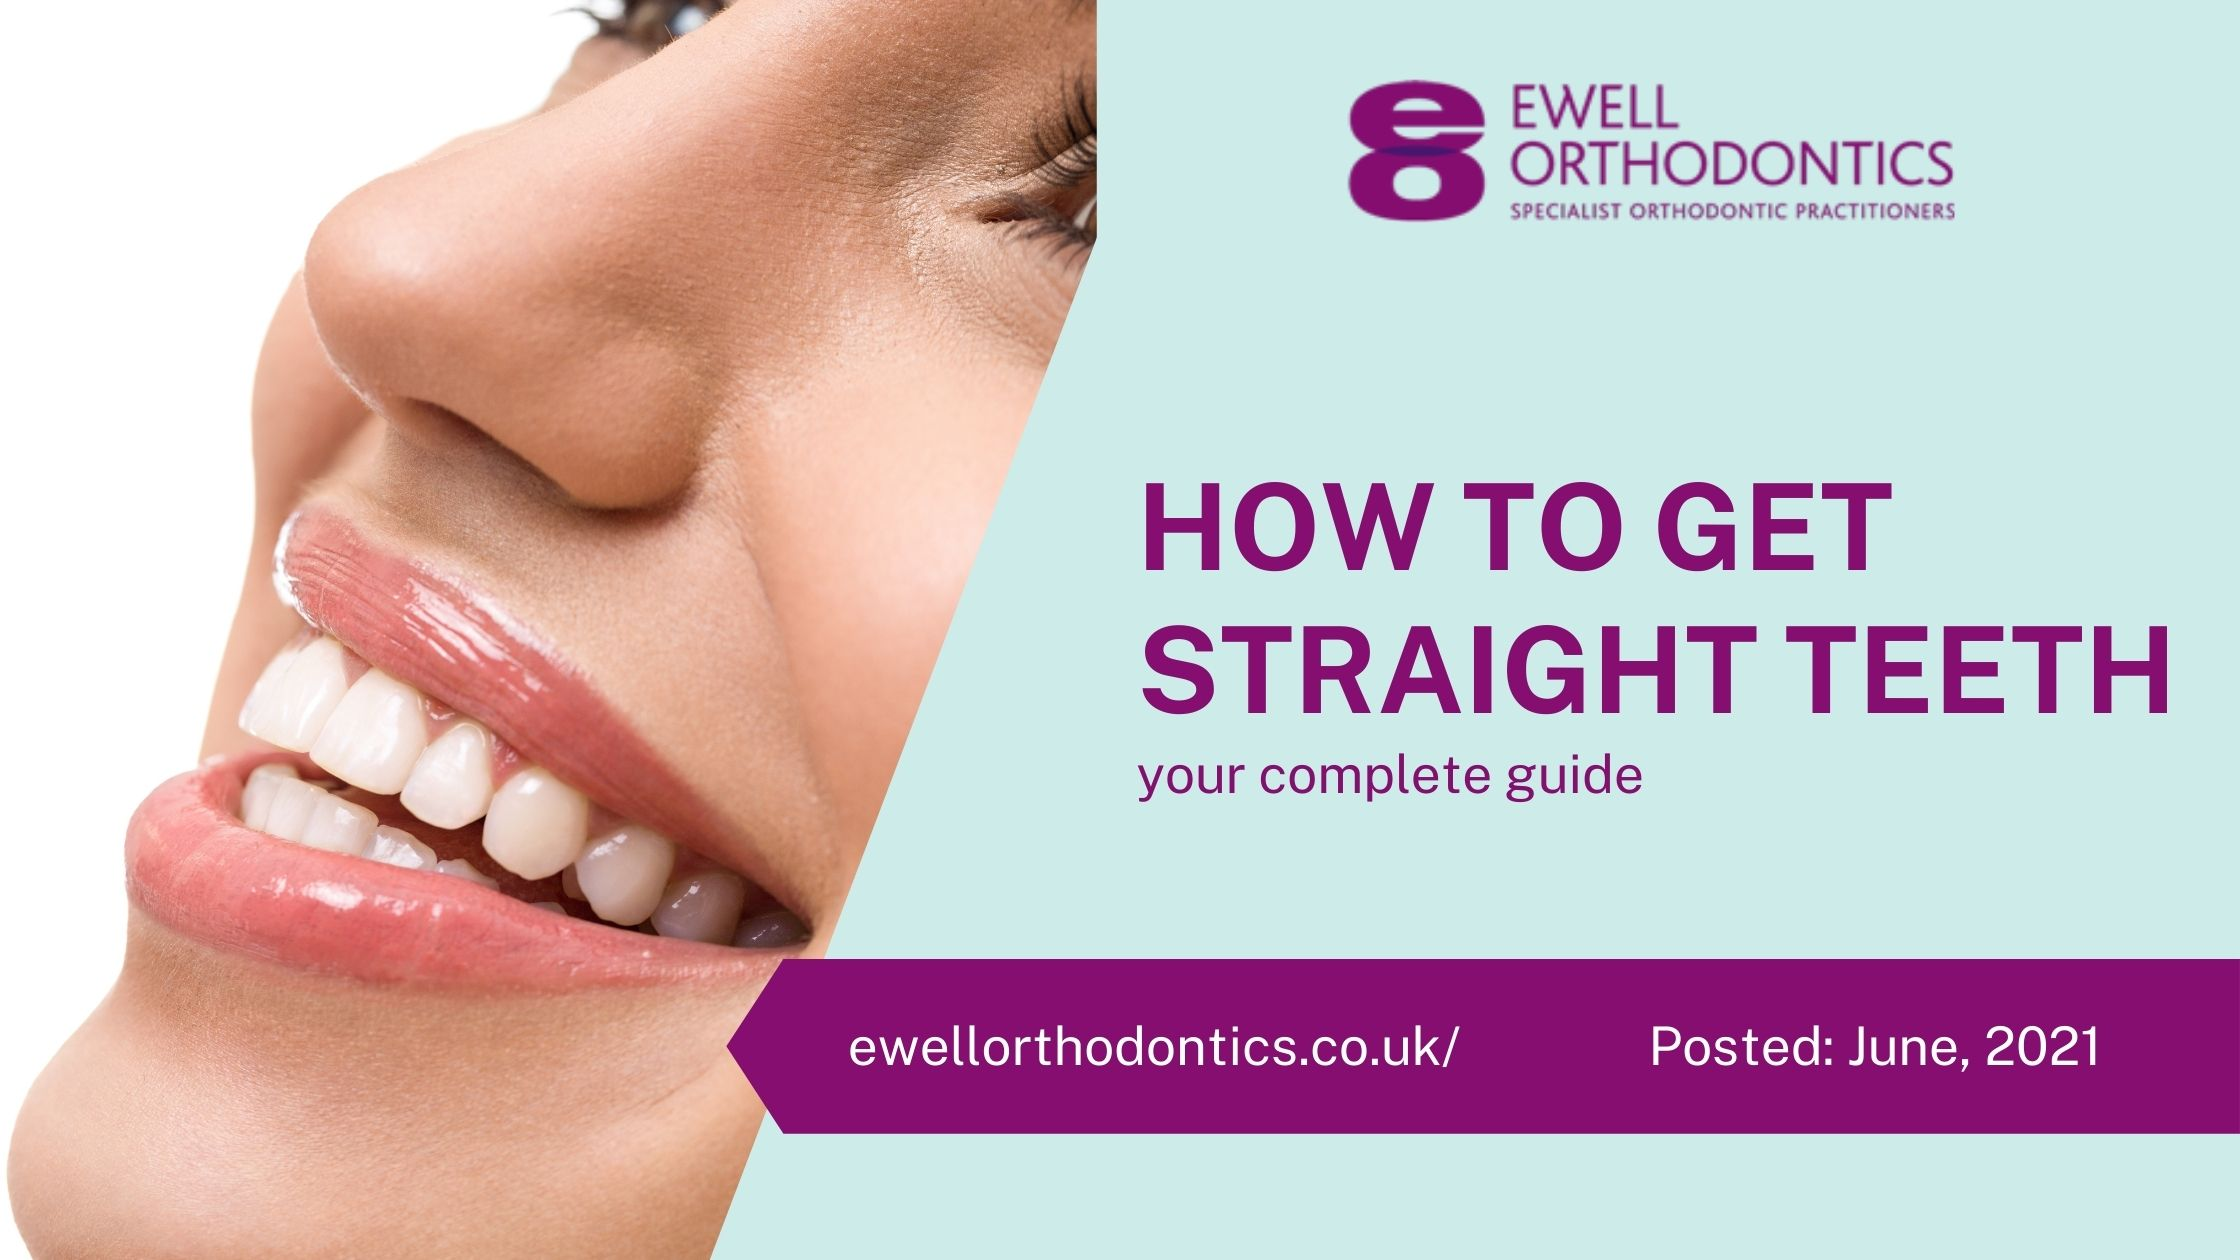 How to get straight teeth